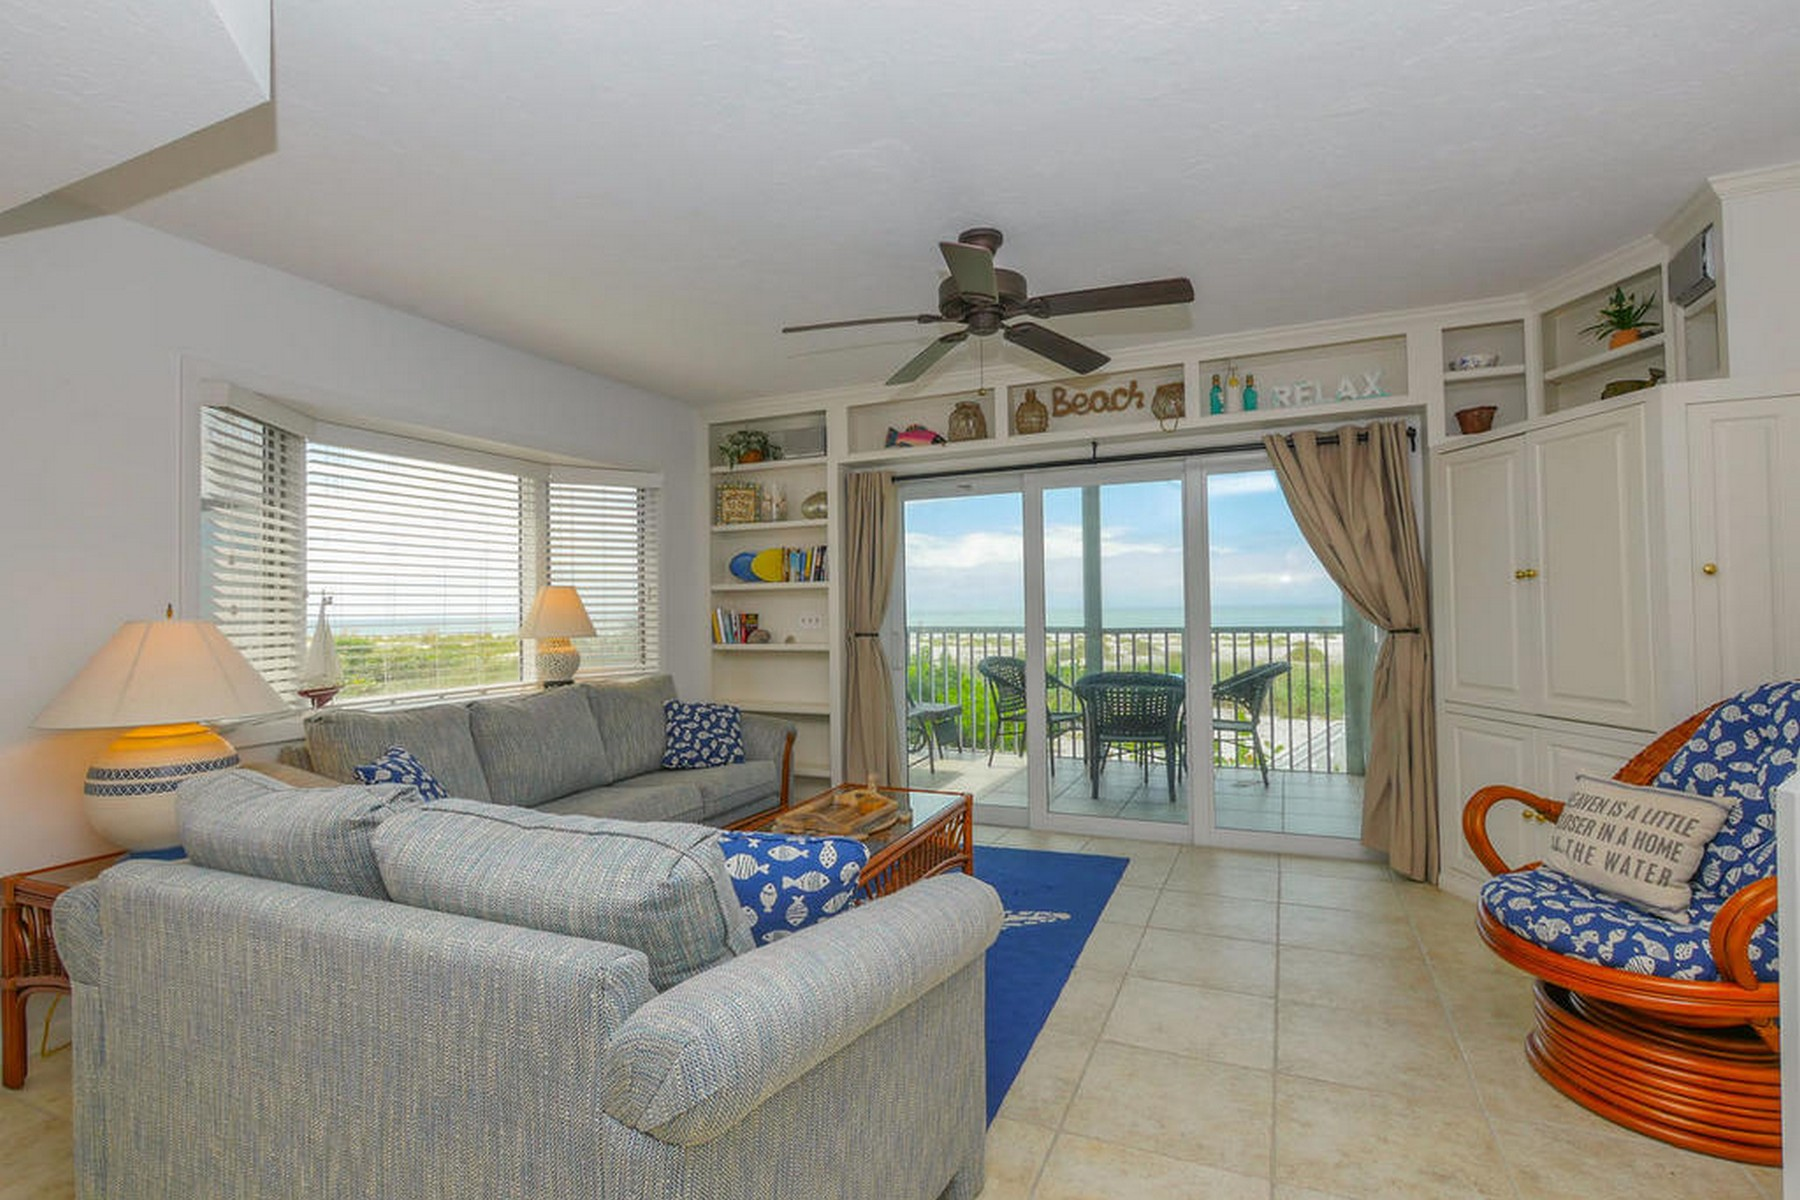 Single Family Home for Rent at Sundown #20 420 Gulf Blvd, #20 Boca Grande, Florida 33921 United States